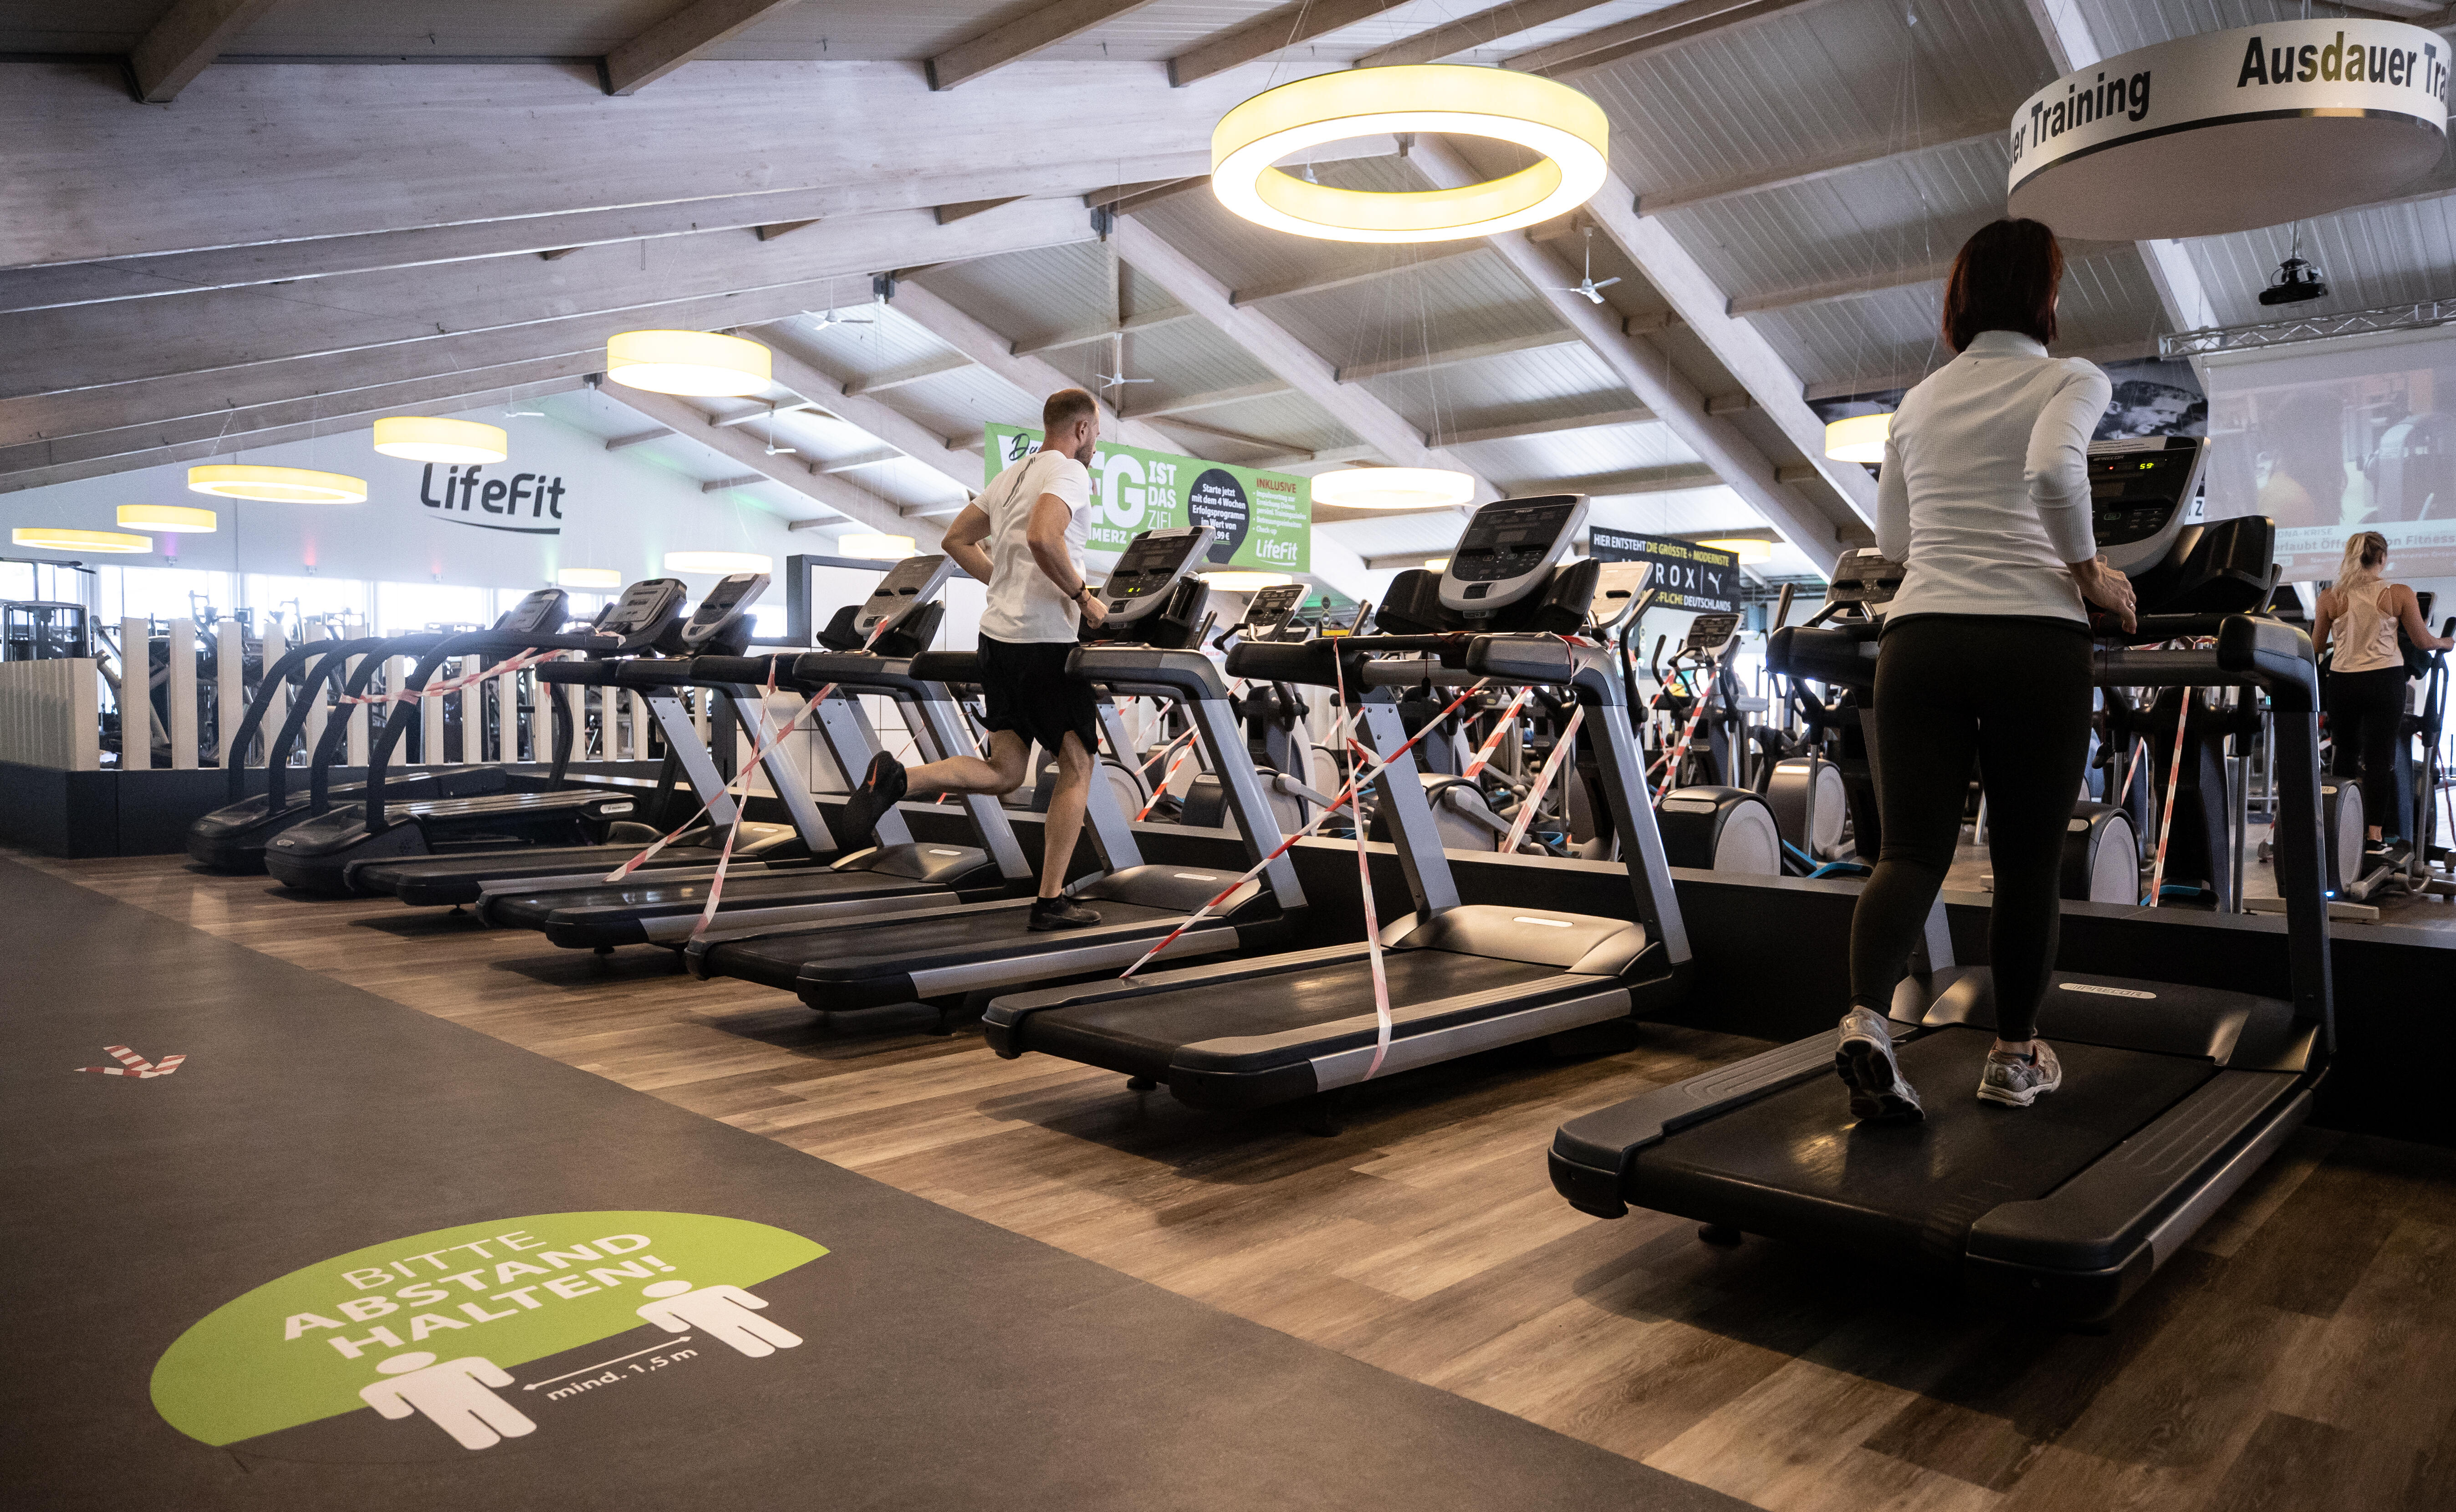 Germany: An altered gym experience